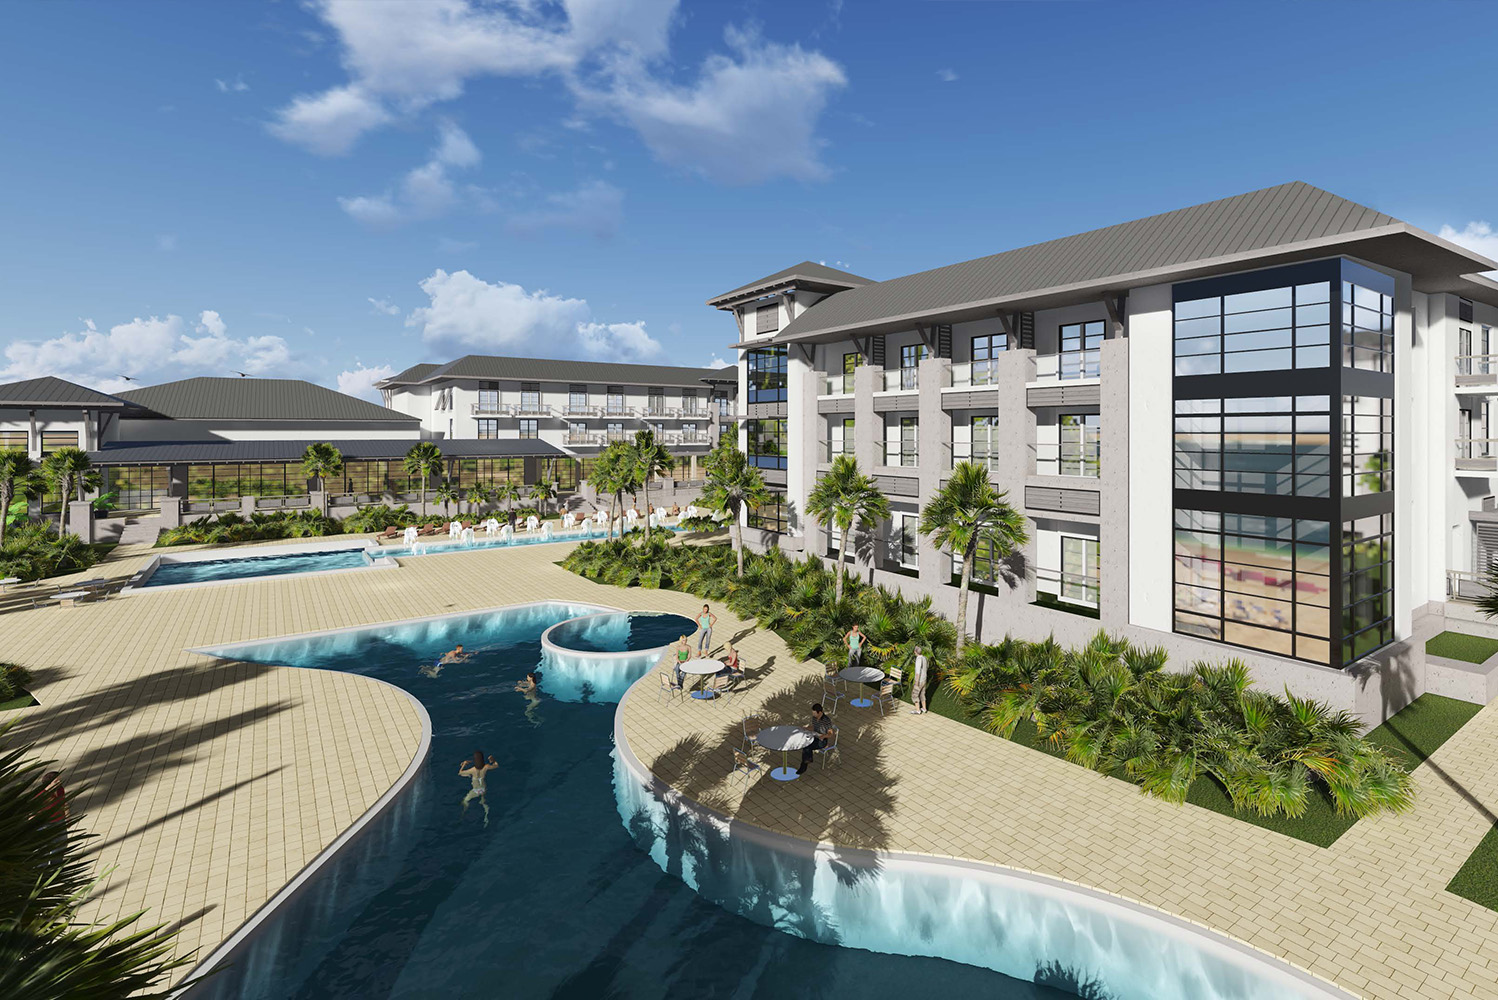 J Banks Design Pfvs Architecture Combine For Oceanfront Embassy Suites By Hilton In Florida